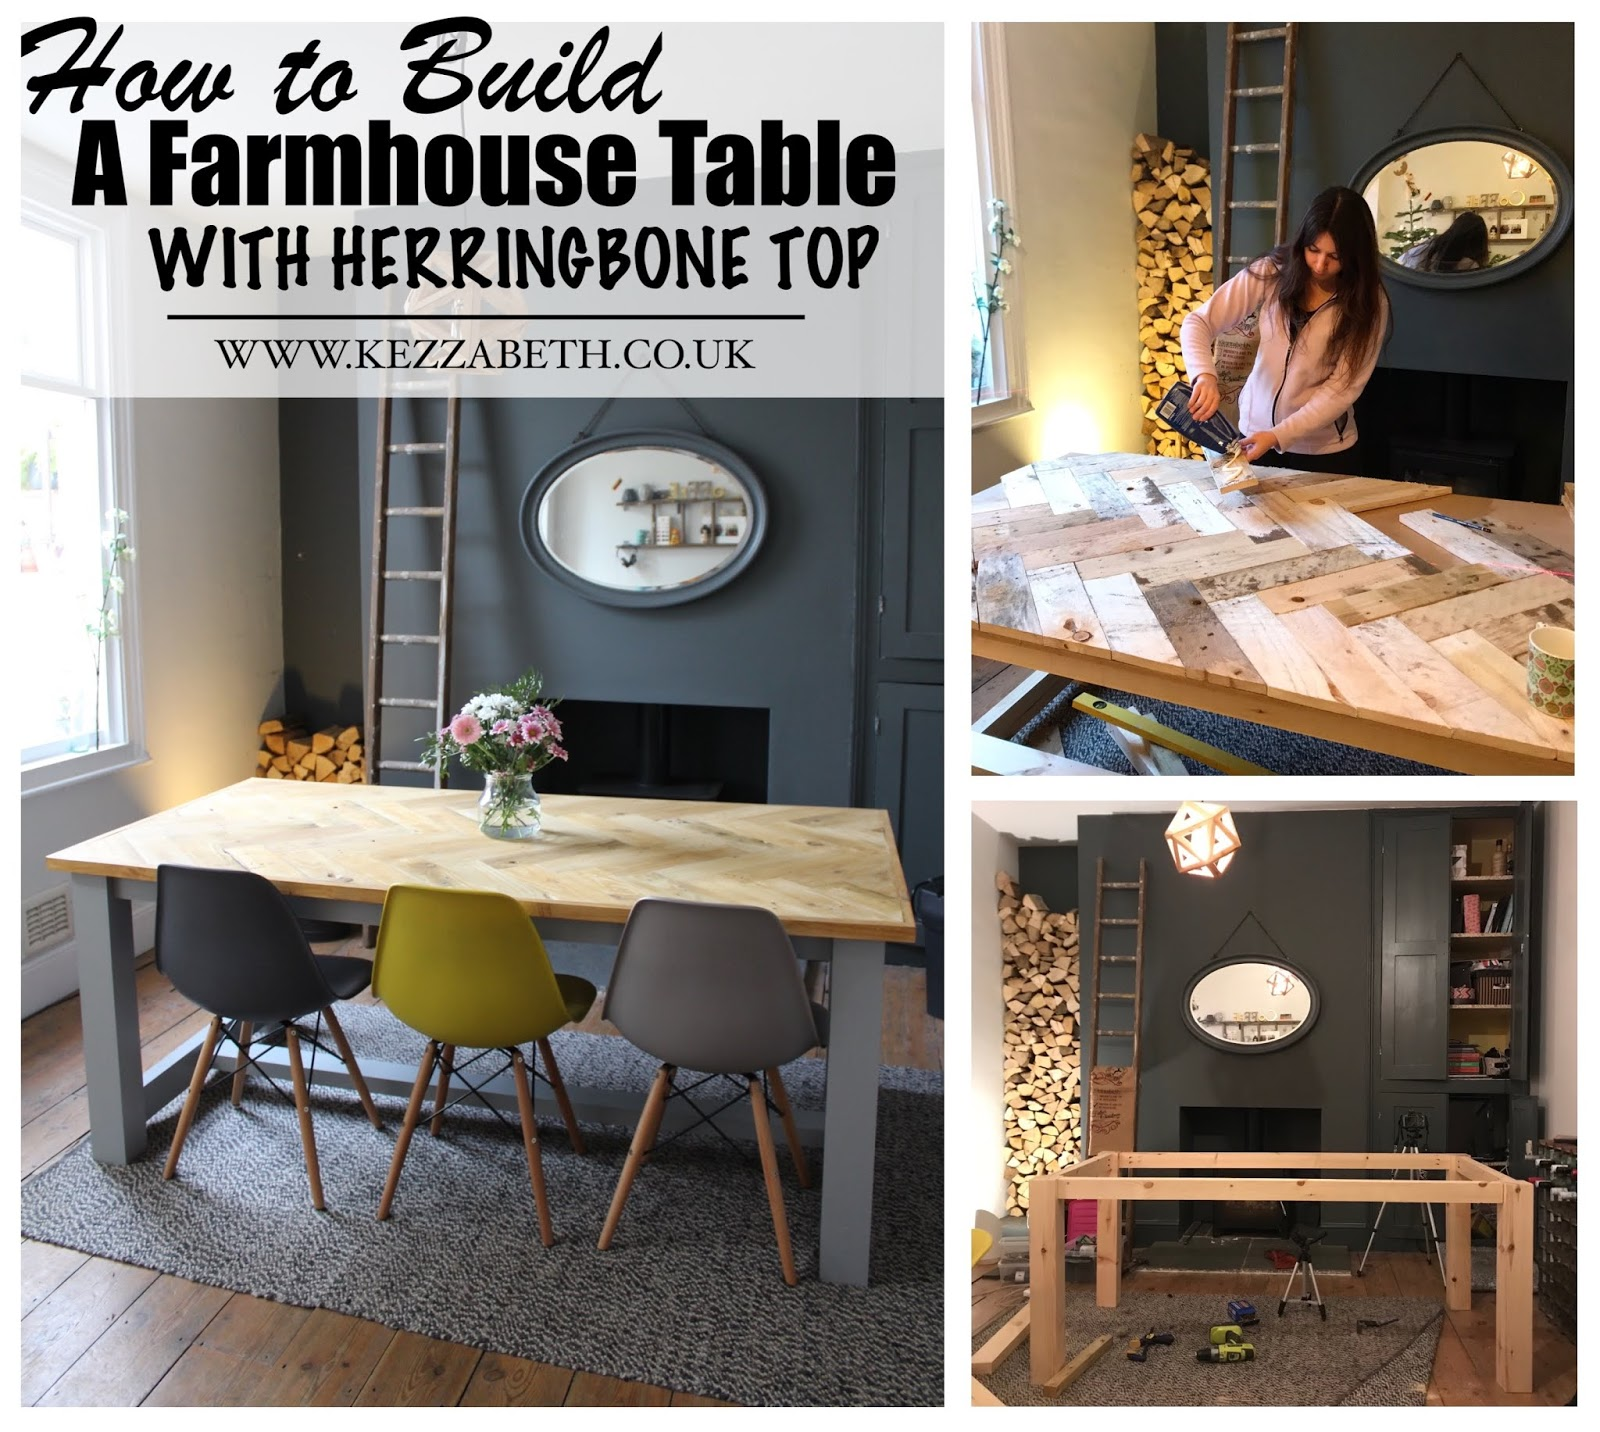 How to Build a Farmhouse Style Table with Herringbone Top - DIY Guide